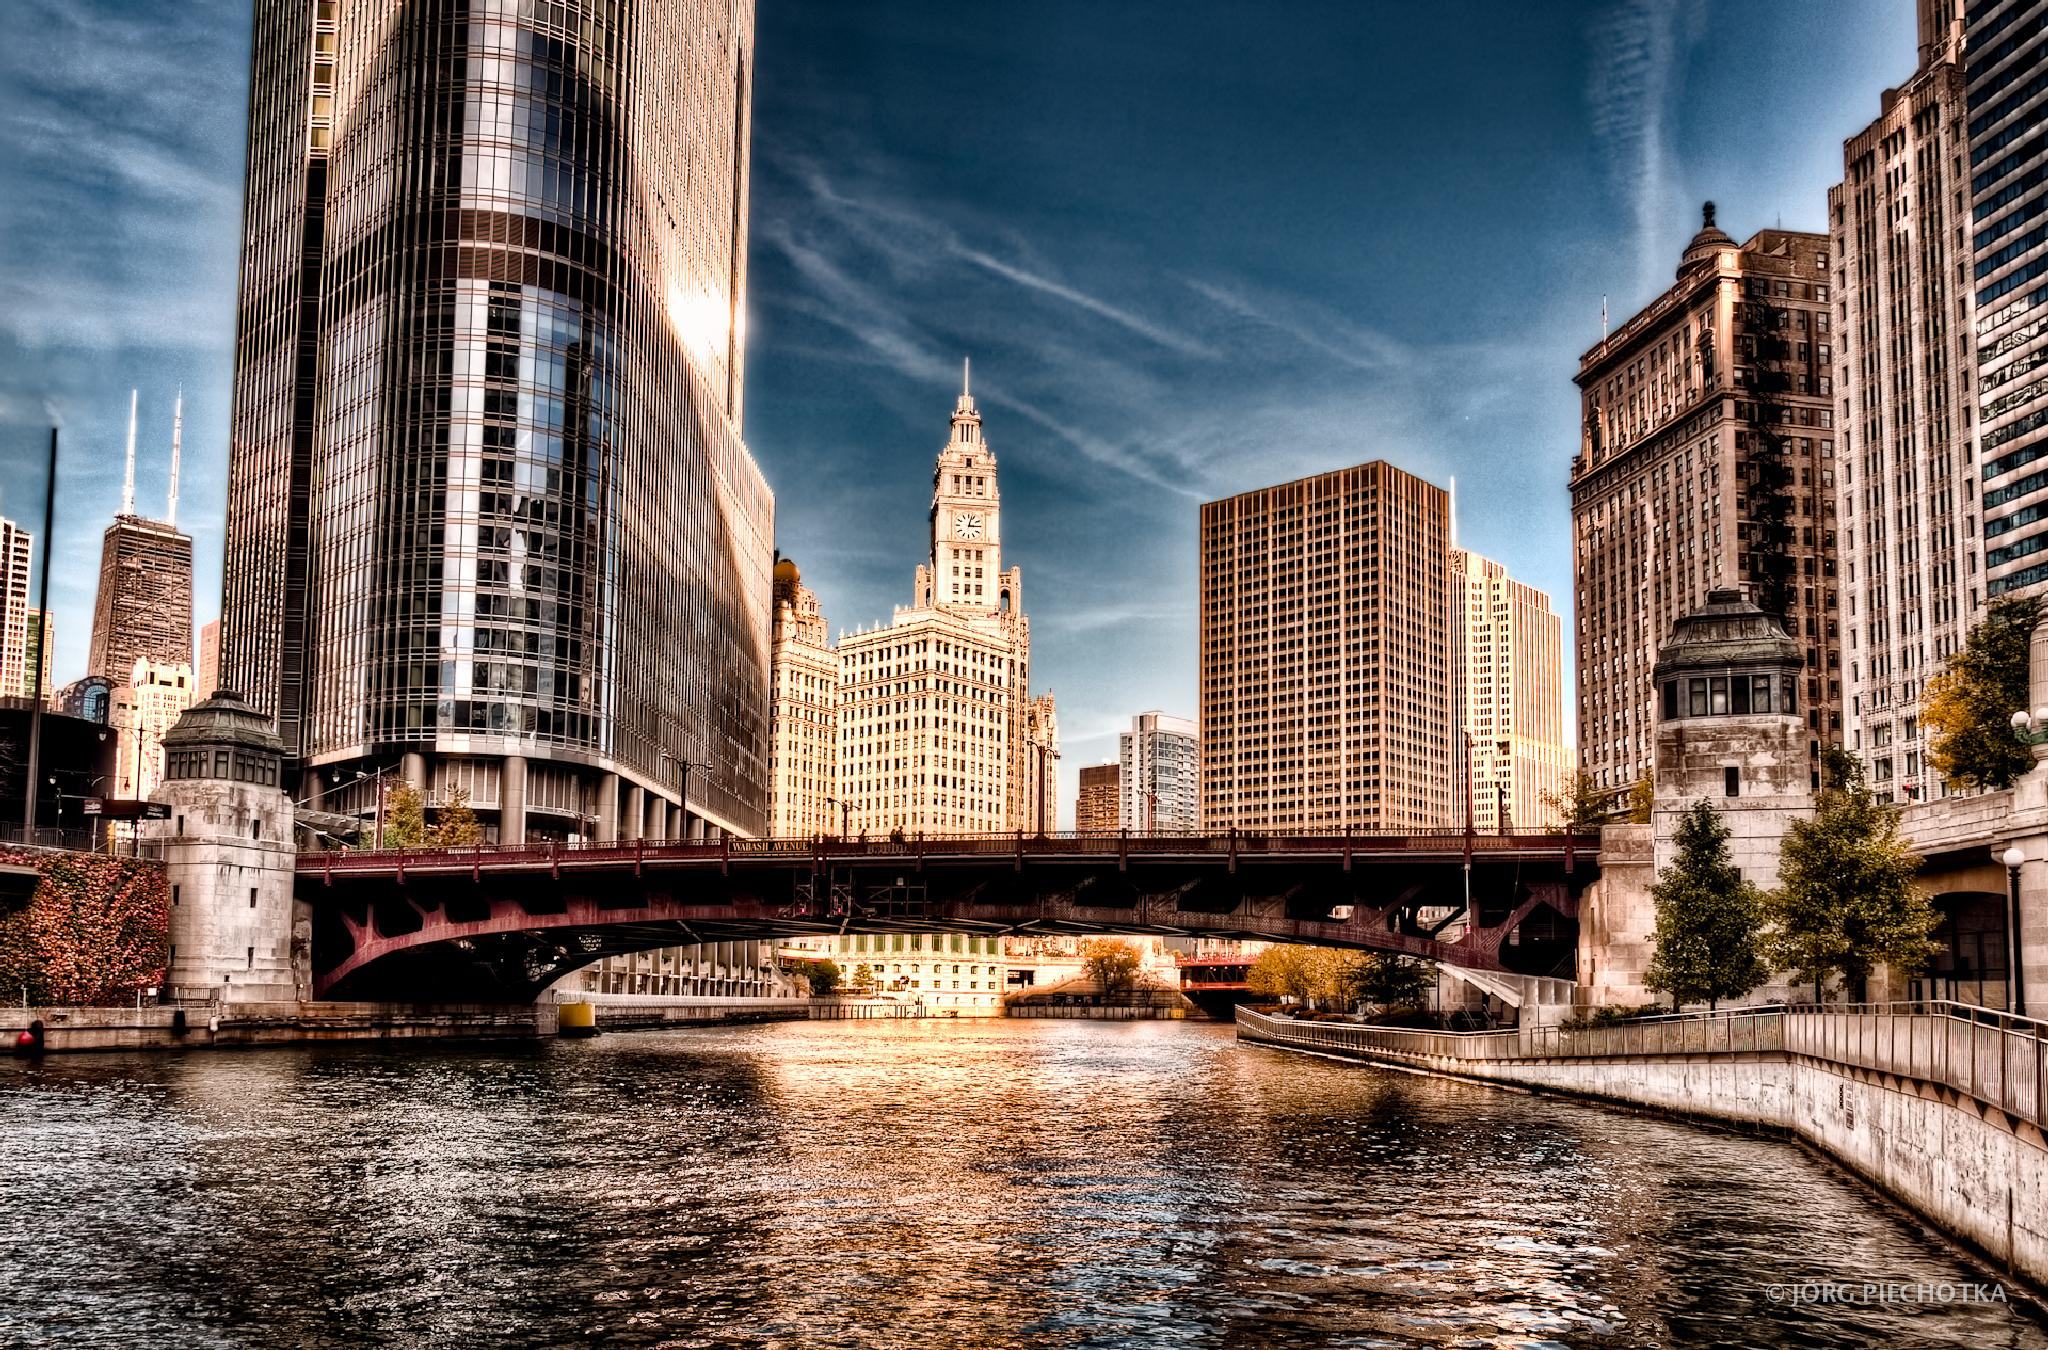 CHICAGO RIVER by Joerg Piechotka